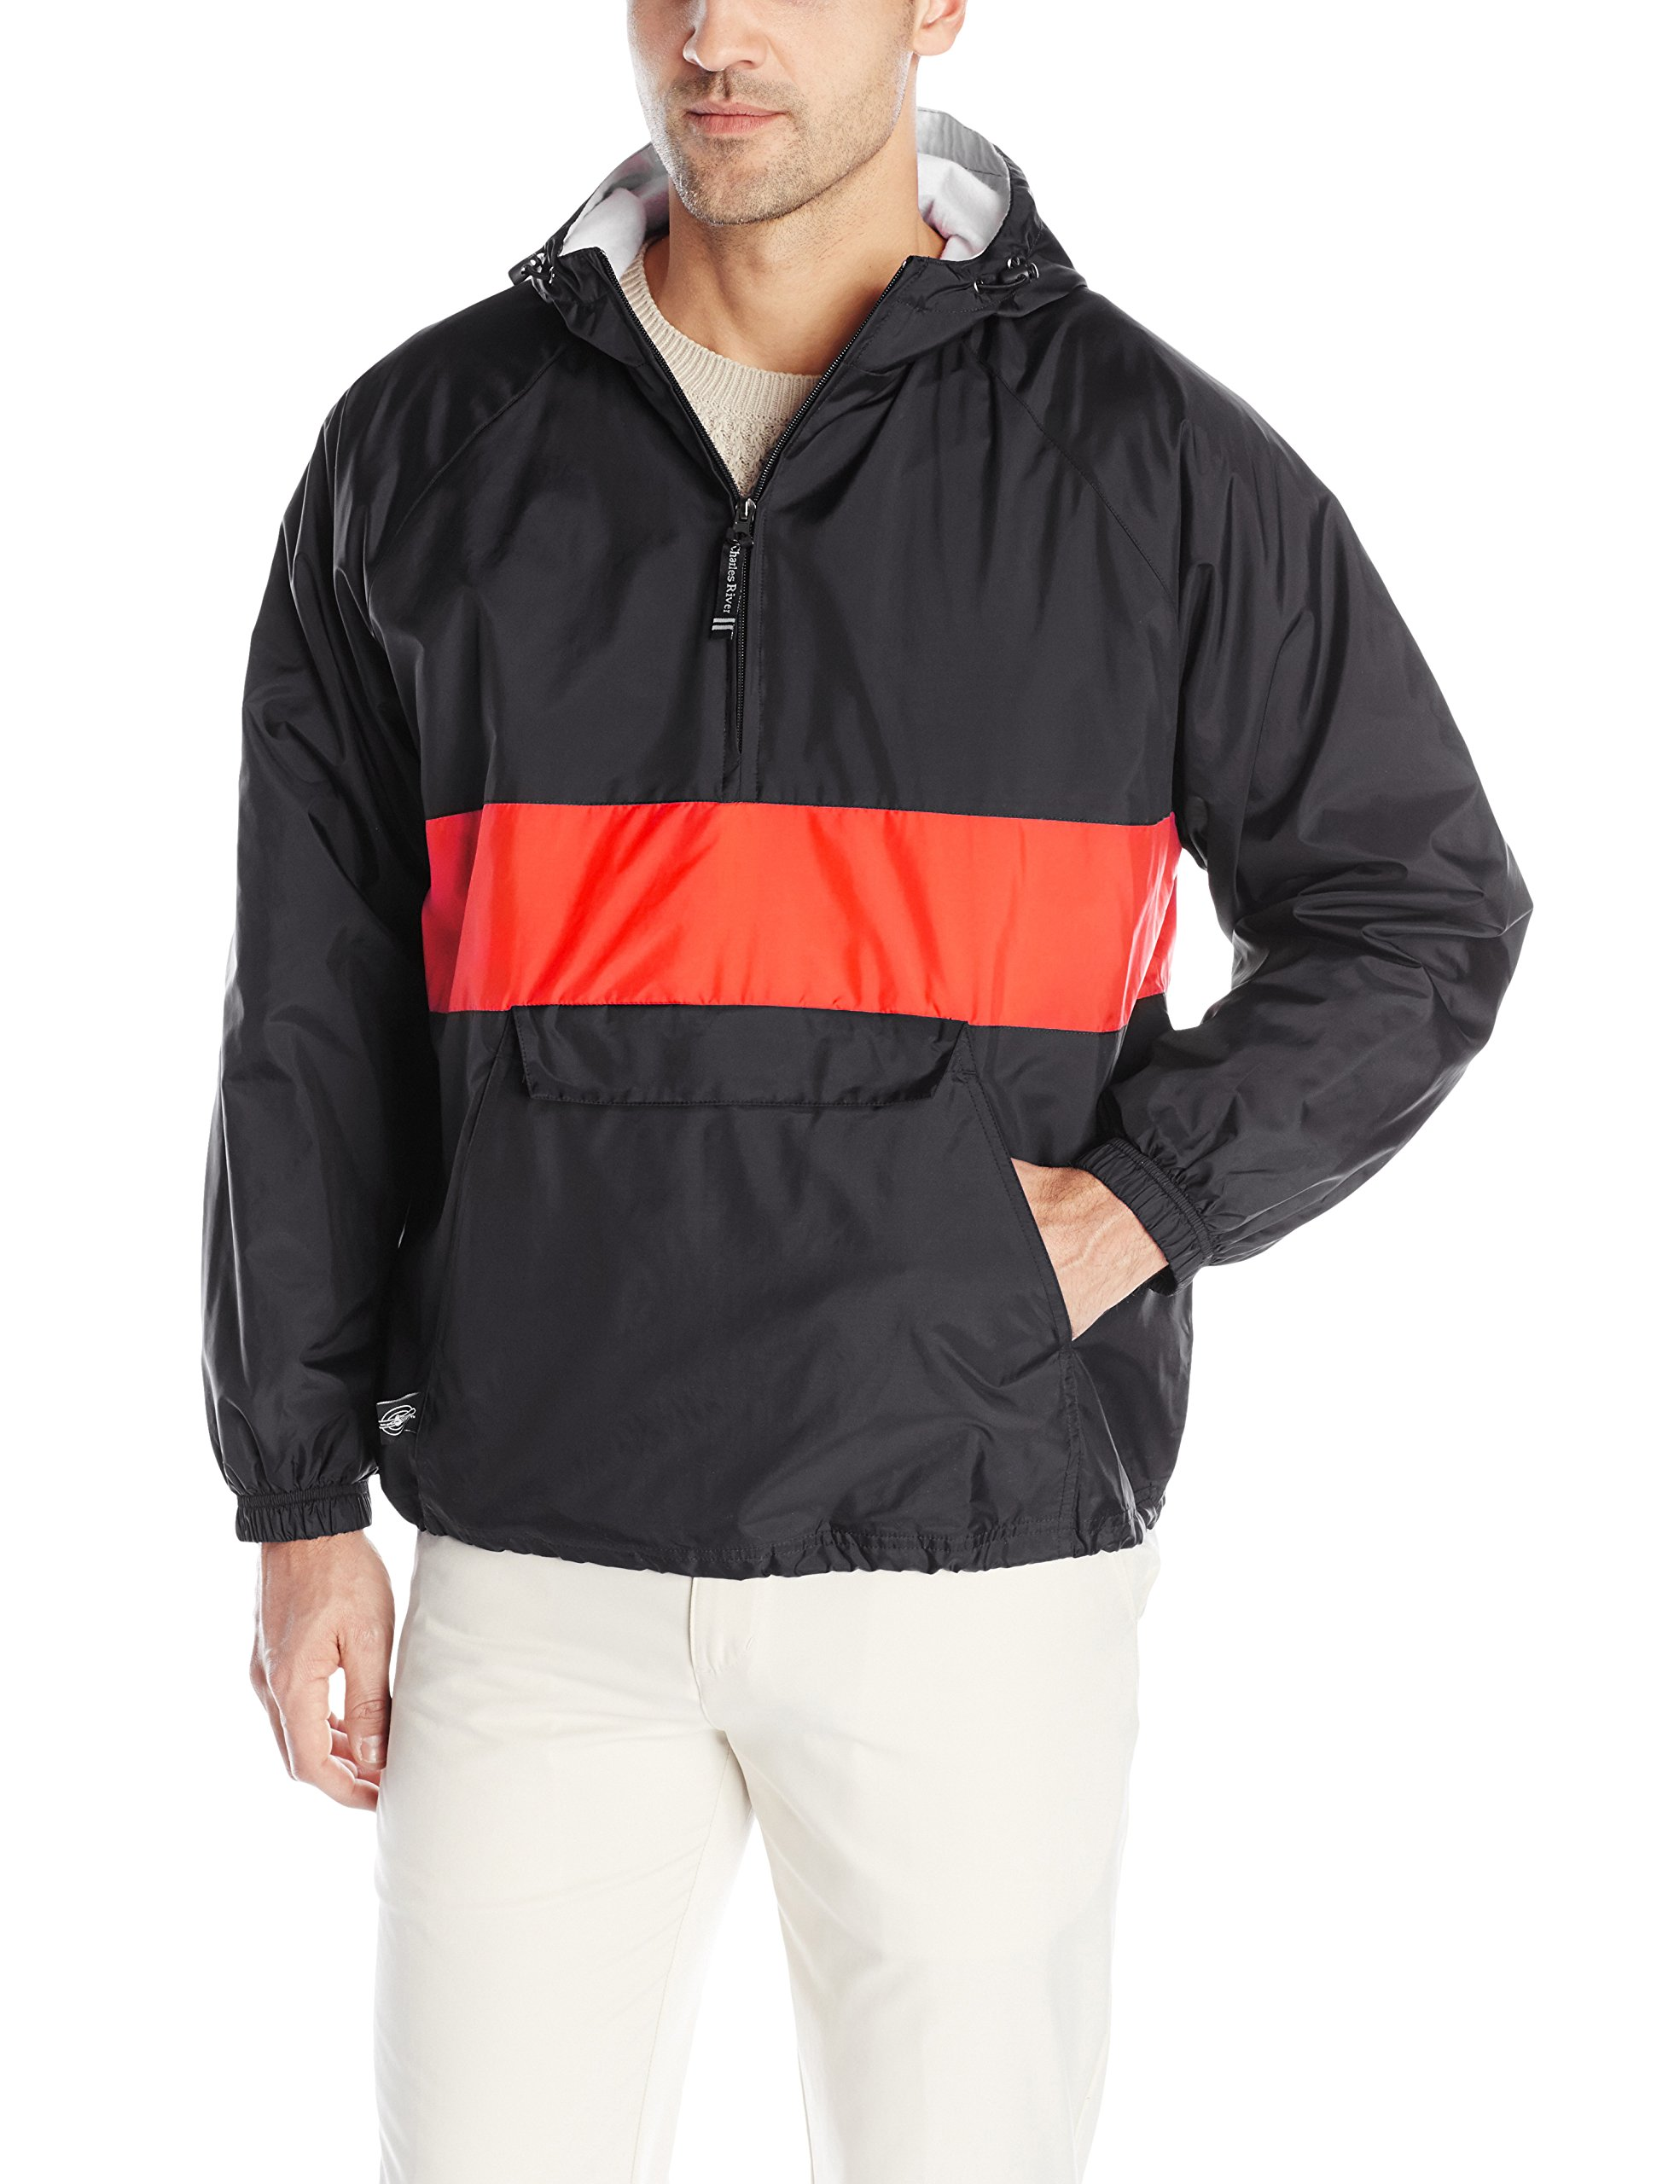 Charles River Apparel Men's Classic Striped Pullover Jacket, Black/Red, Large